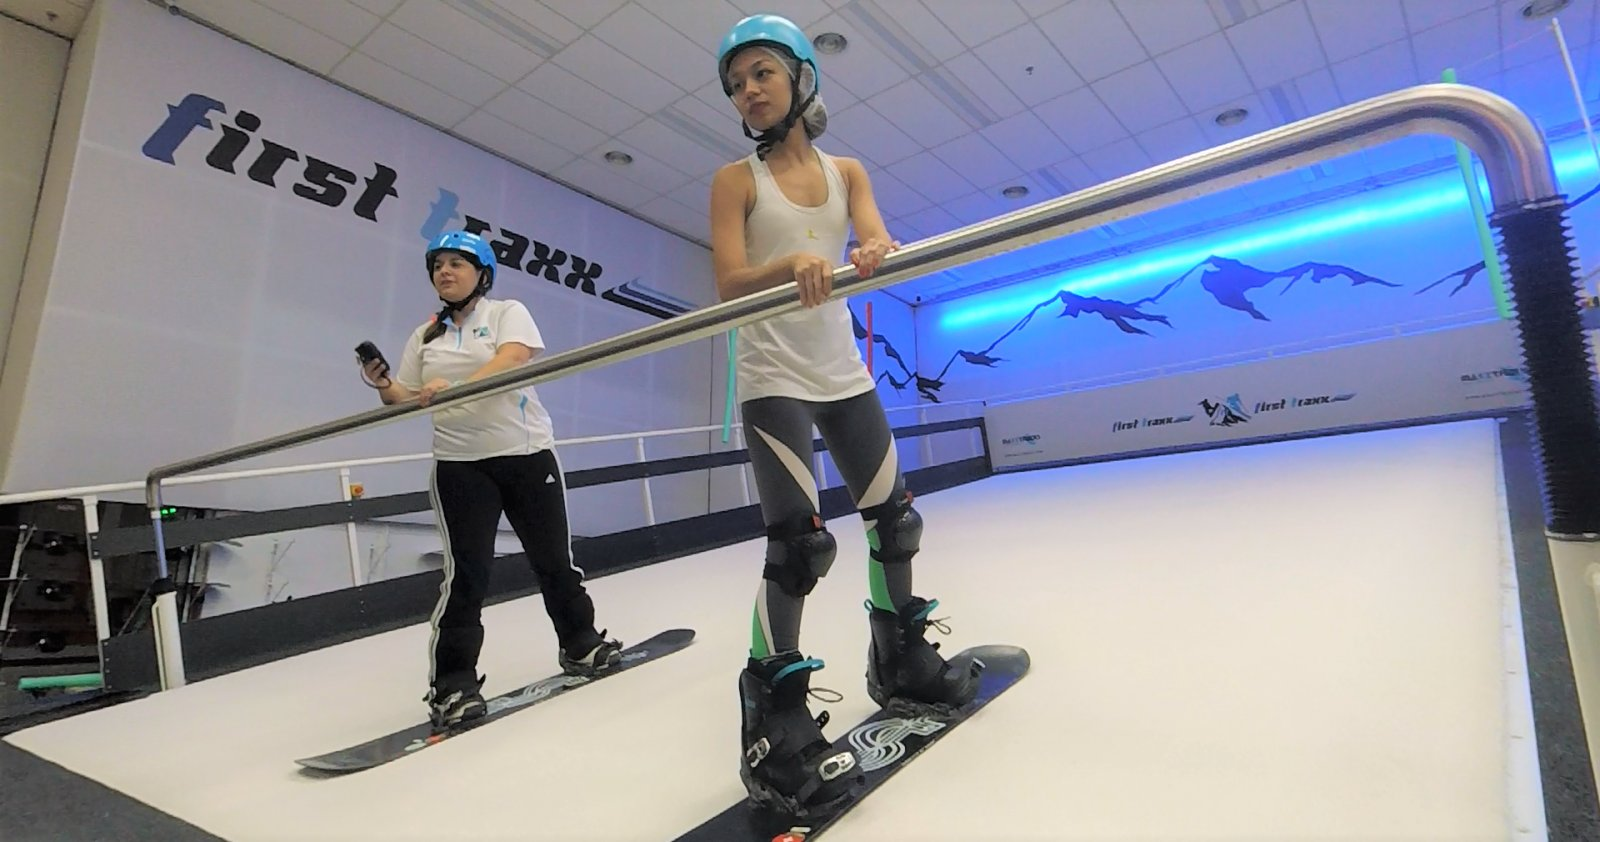 We Tried Indoor Snowboarding at First Traxx & Here's 5 Things We Learnt - WORLD OF BUZZ 3